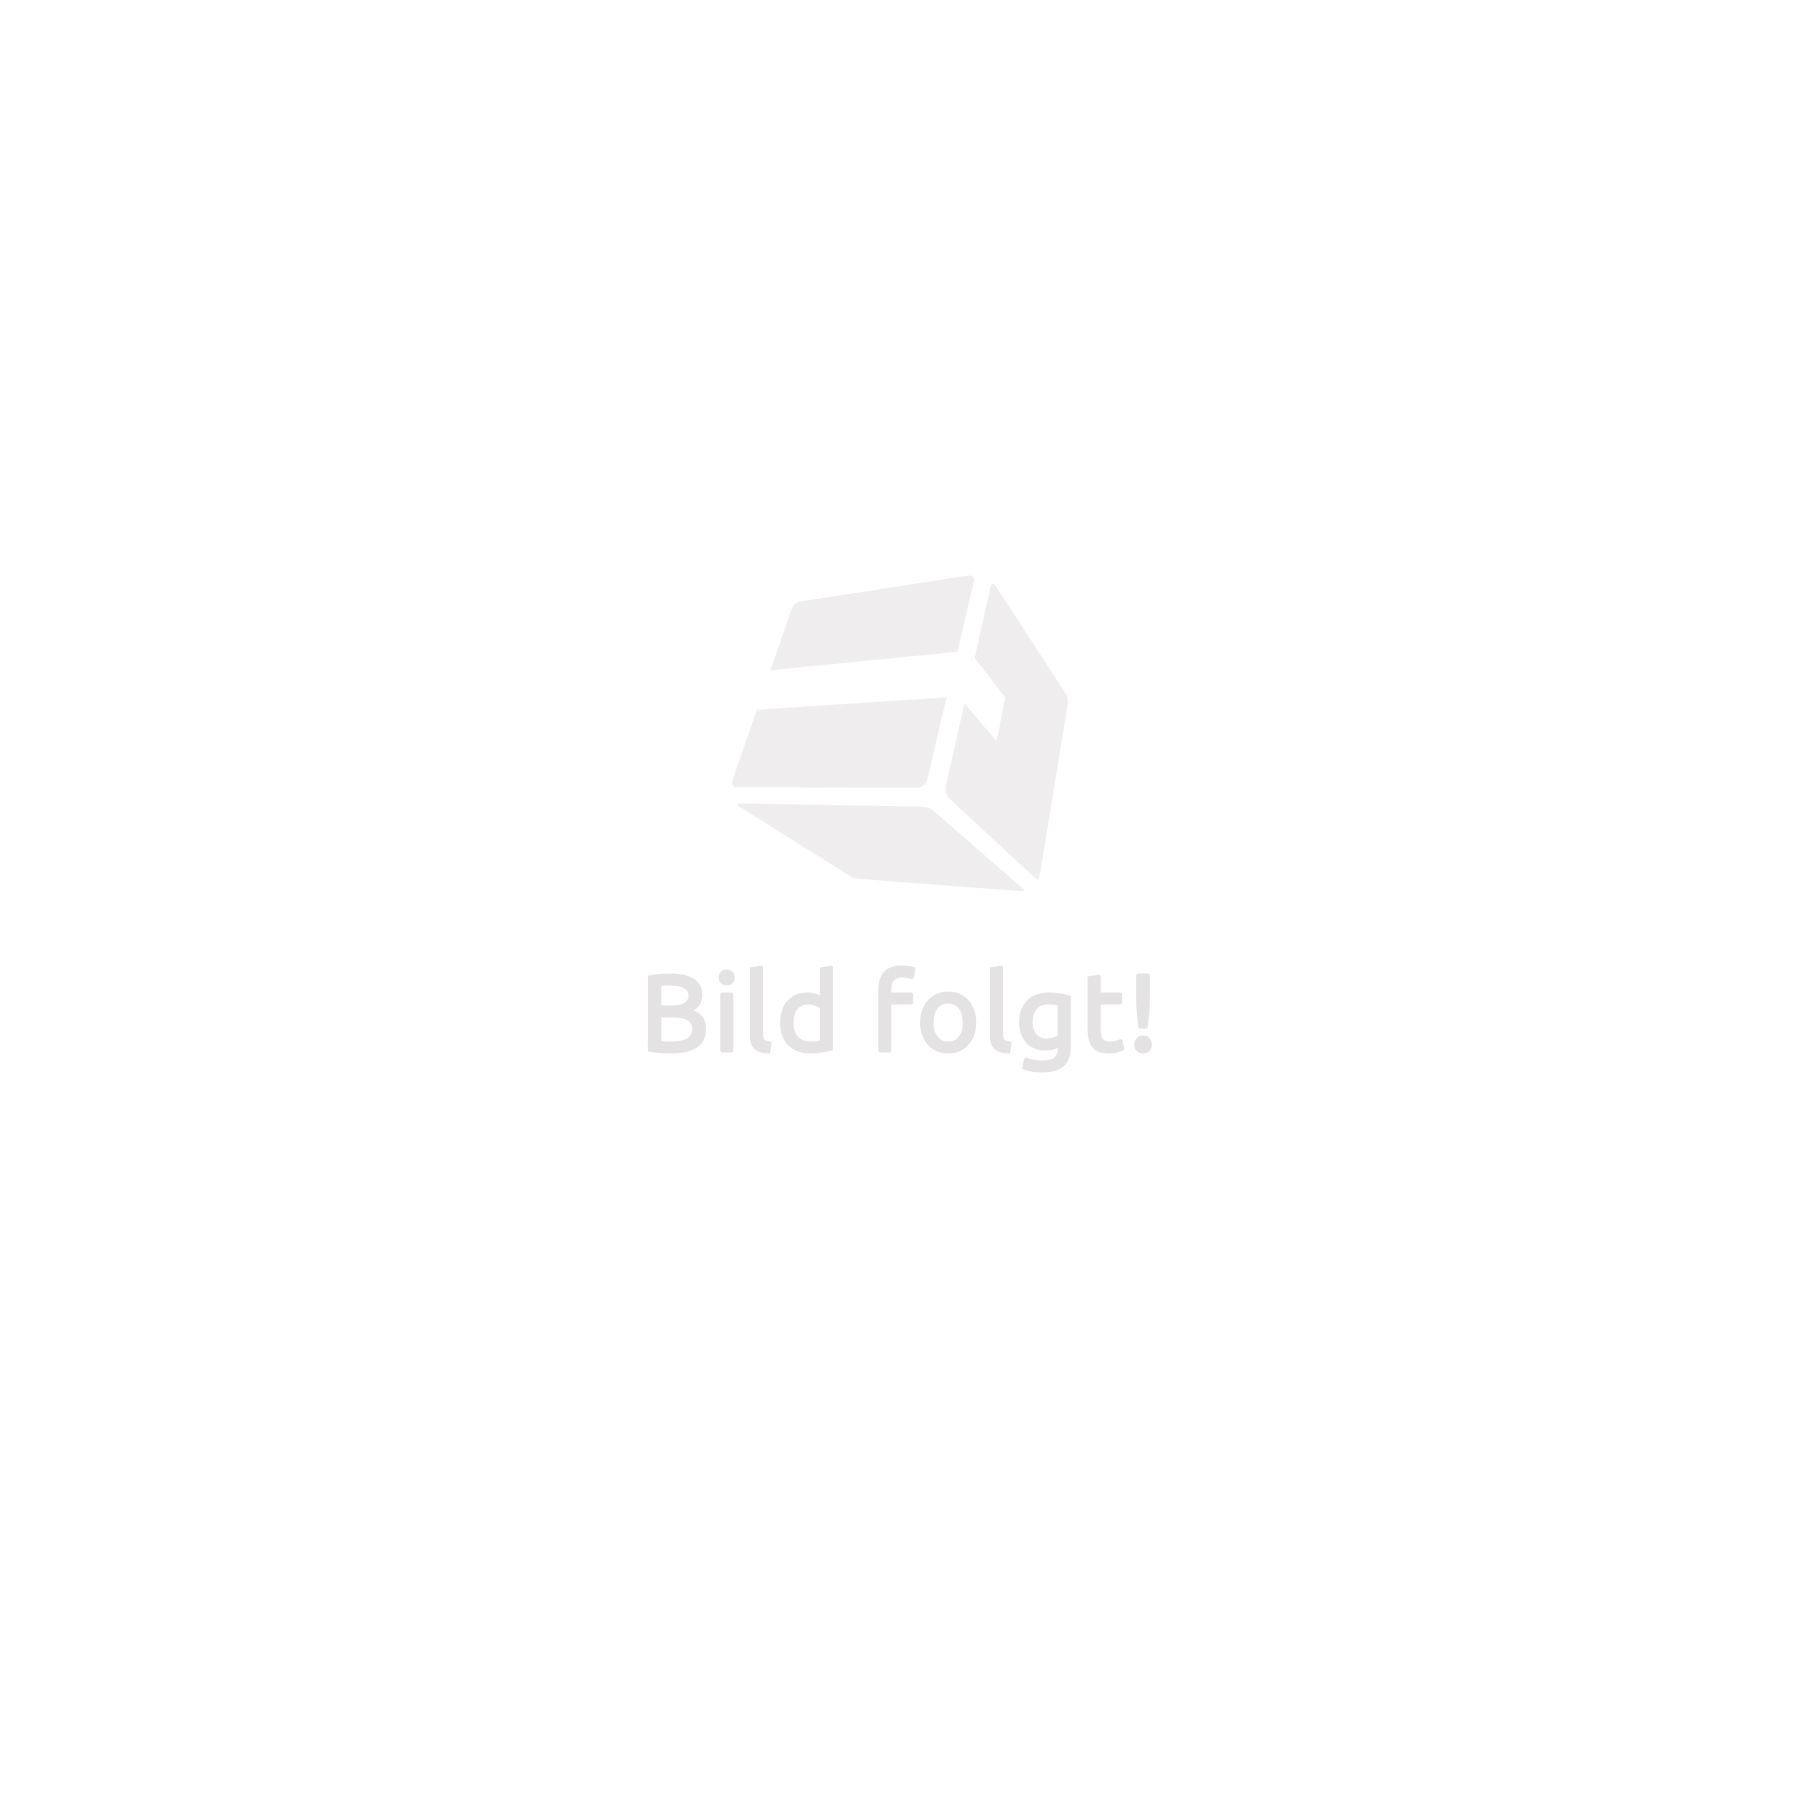 lit en m tal double 2 places cadre de lit sommier lattes 140x200 cm noir ebay. Black Bedroom Furniture Sets. Home Design Ideas